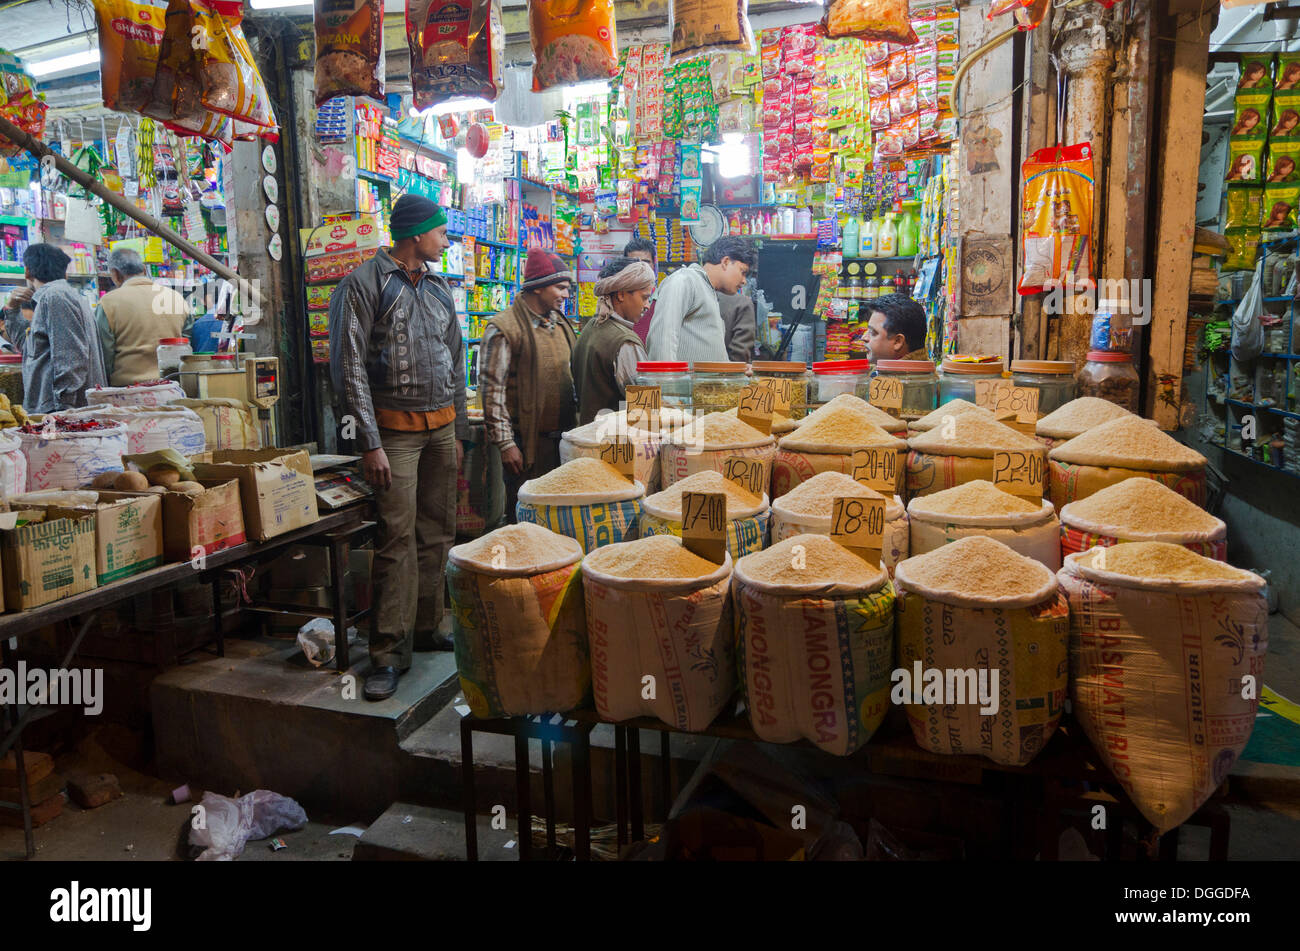 Rice sold at nightmarket in Paharganj, New Delhi, India, Asia - Stock Image